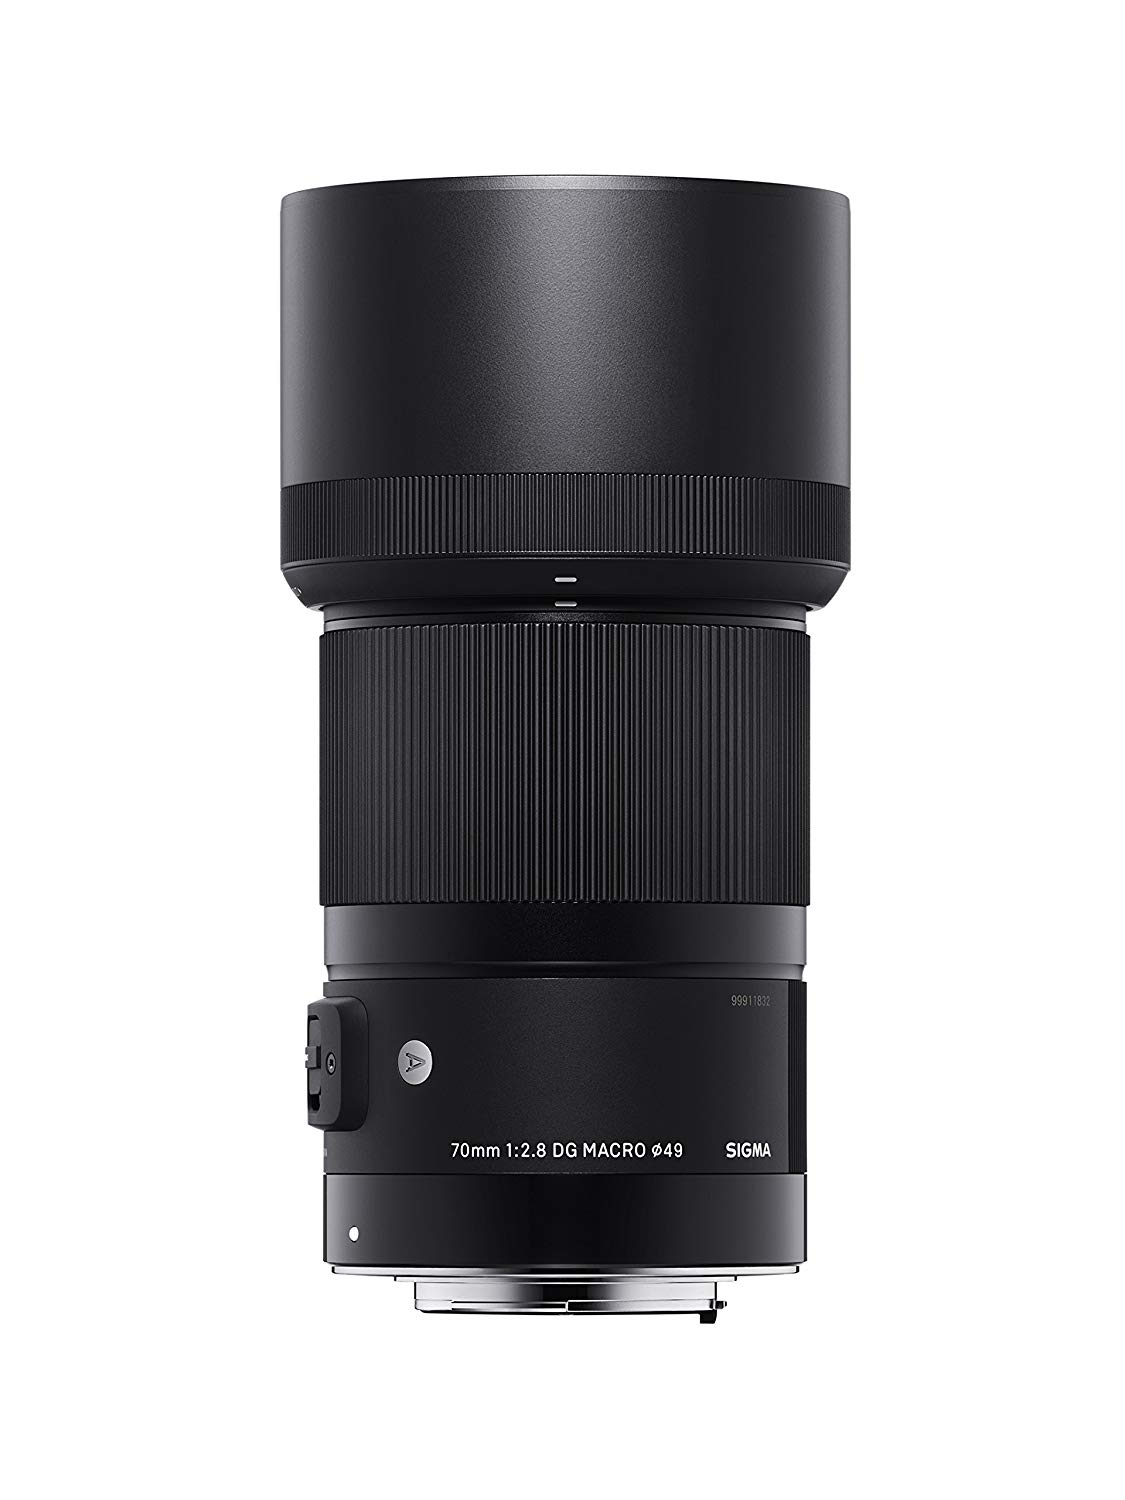 Sigma 70mm 2.8 Macro for Sony E mount